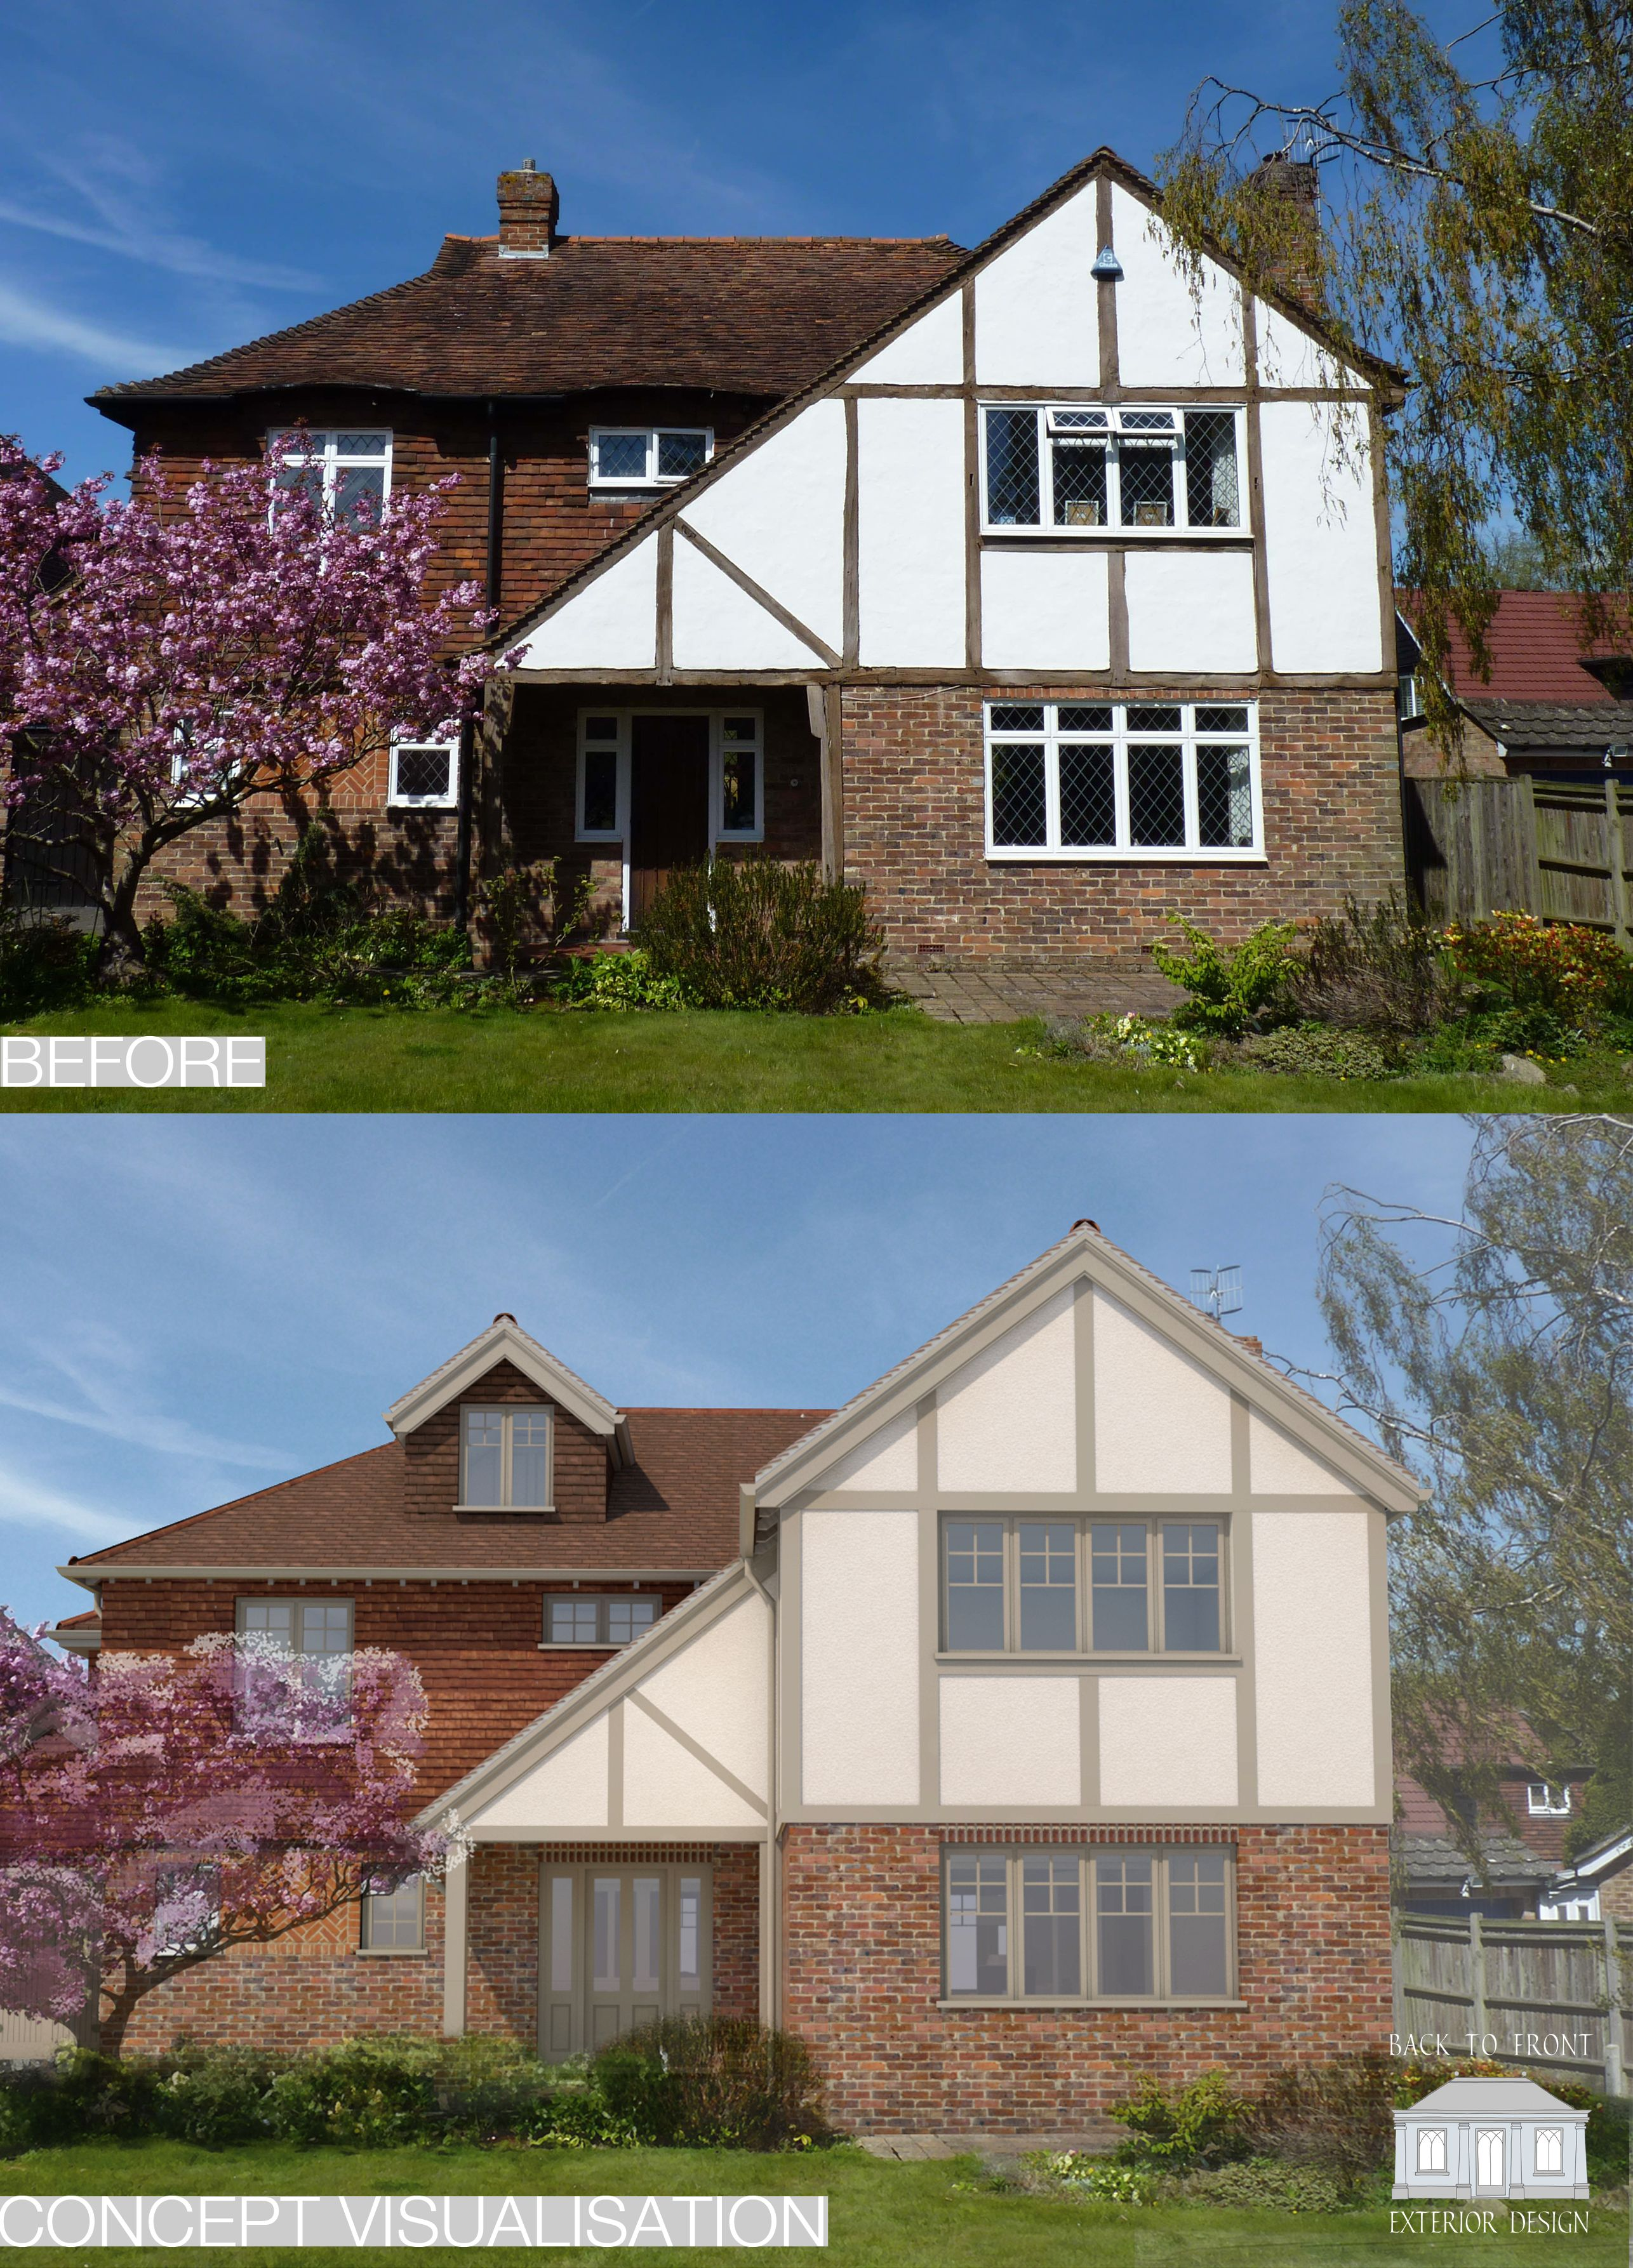 Back to front exterior remodelling scheme united kingdom - How to update a tudor style home exterior ...